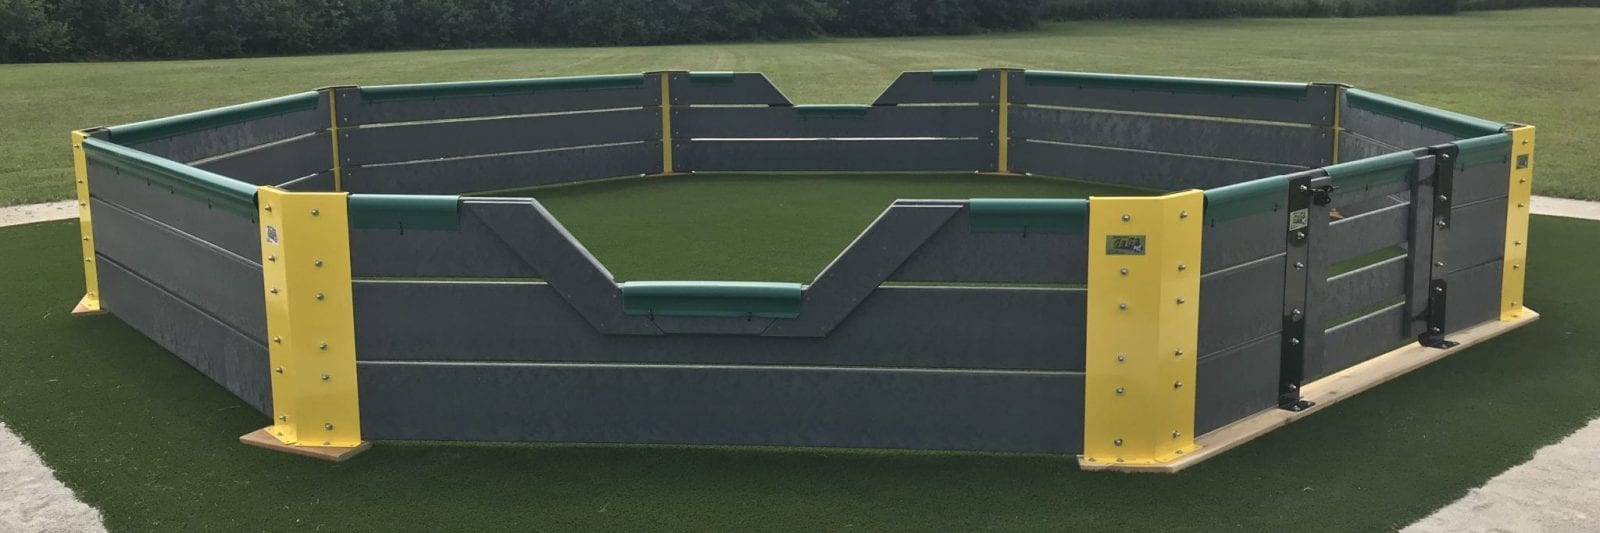 Gaga ball pit using synthetic turf